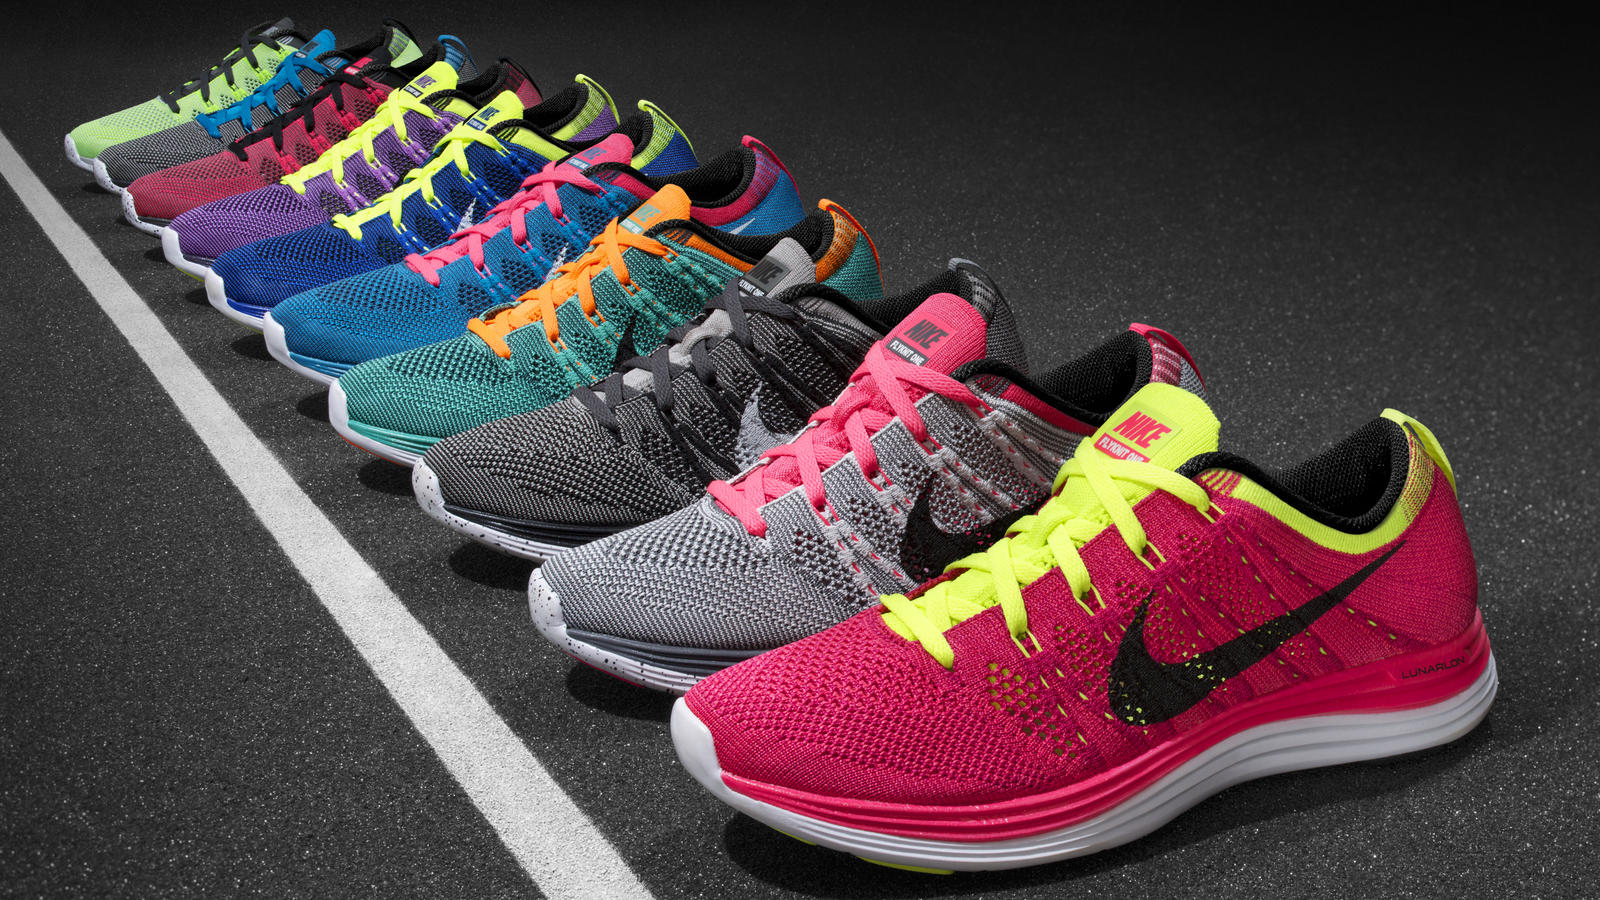 Nike Lunarlon In Flyknit Skin Ultra Soft Second And Fit Combine oBexdC